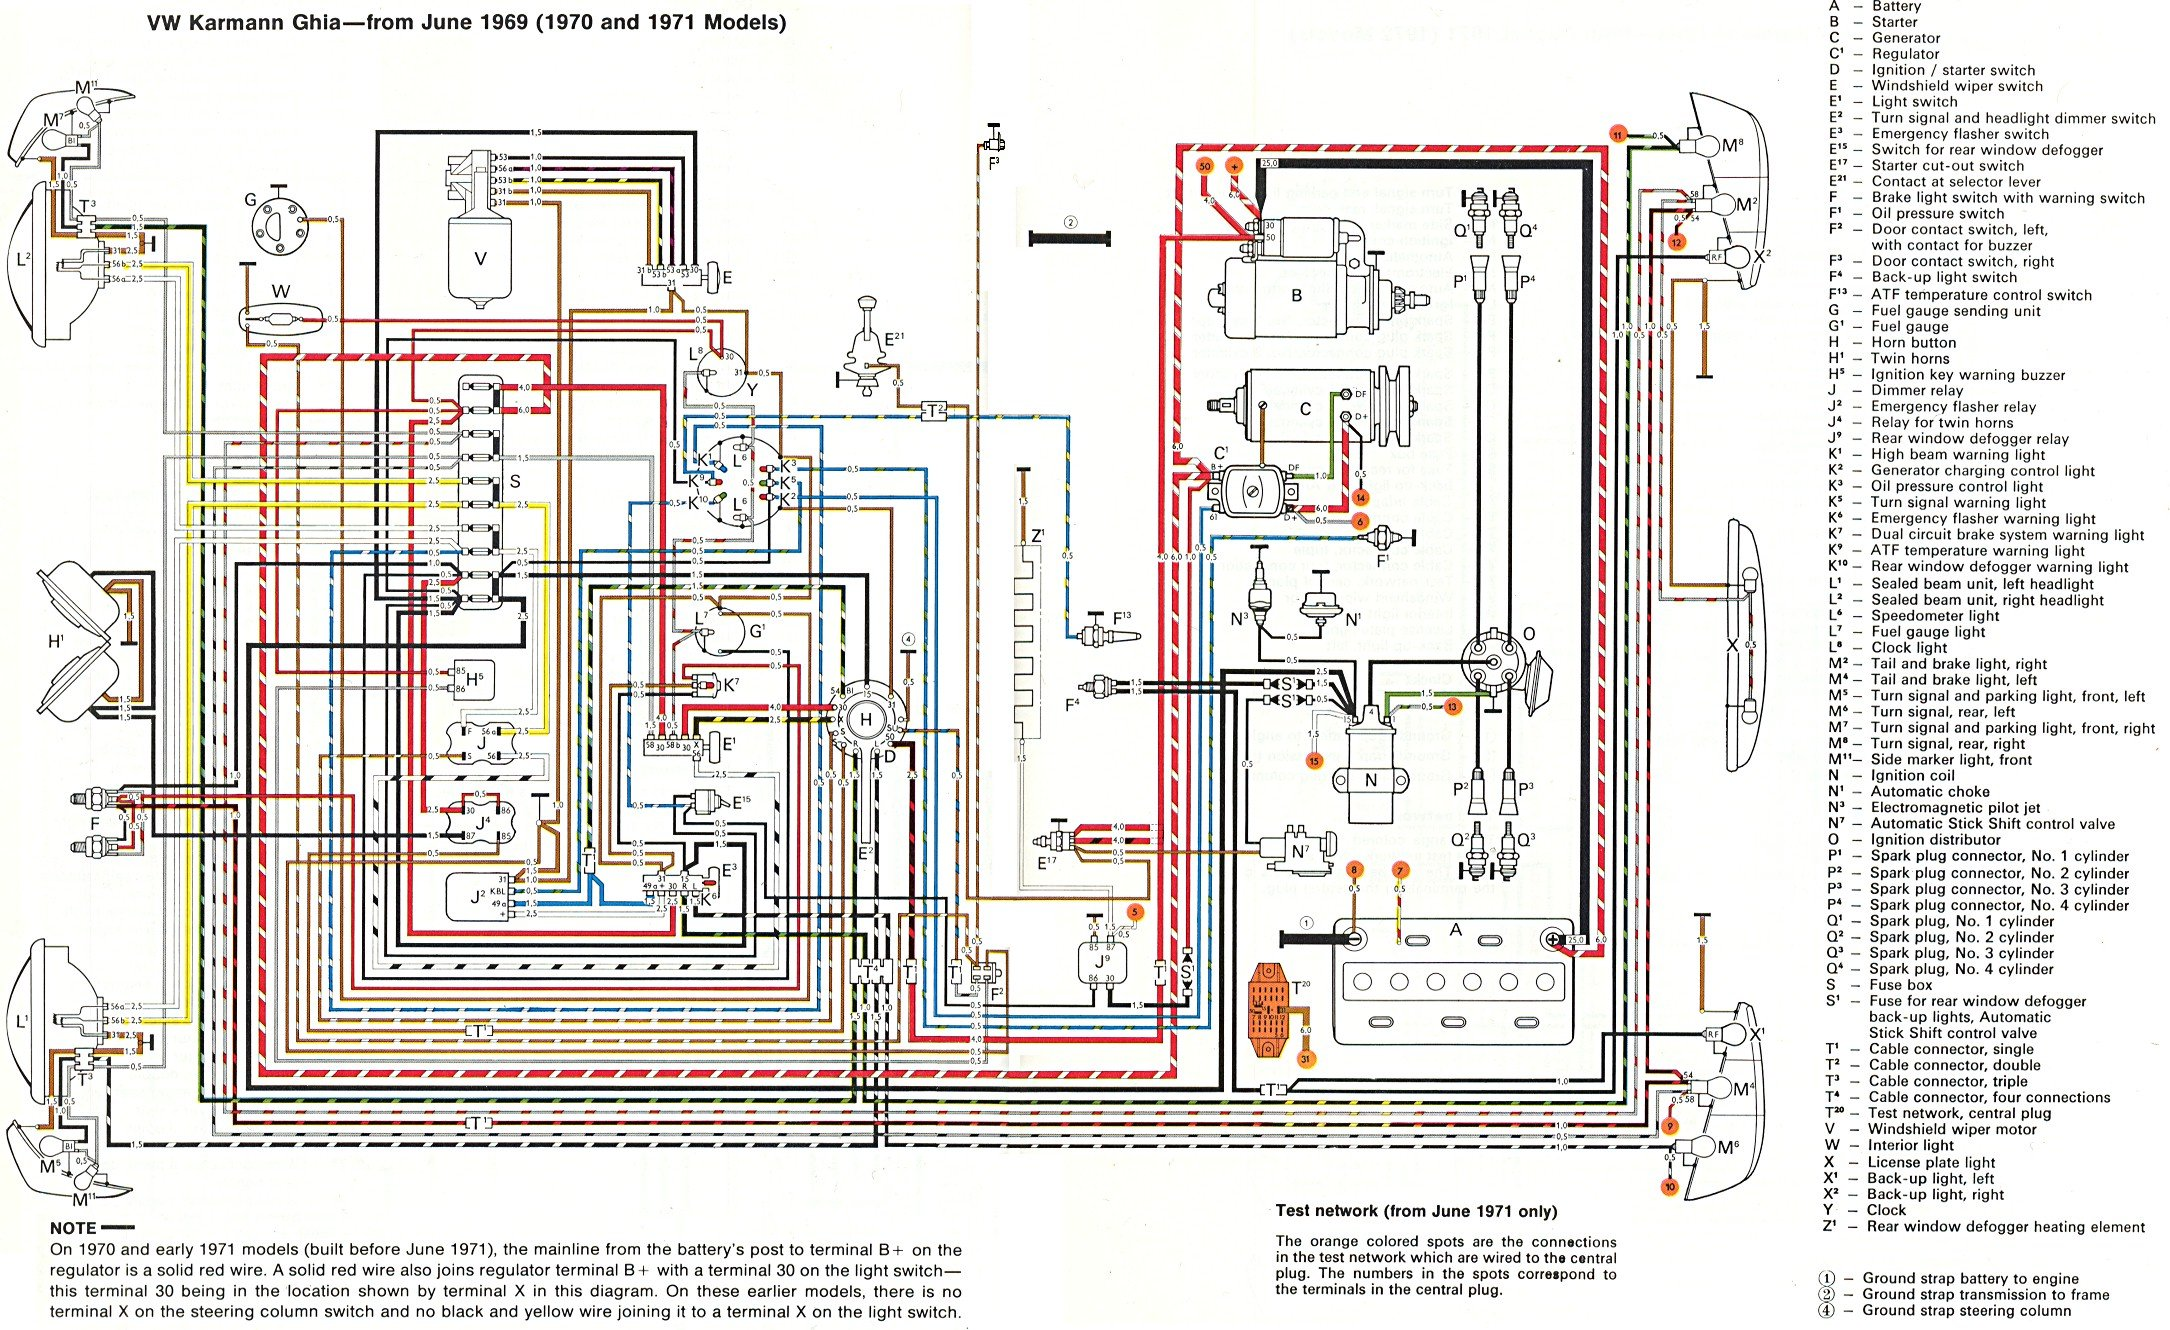 Karmann Ghia Wiring Diagrams Automotive Diagram Creator